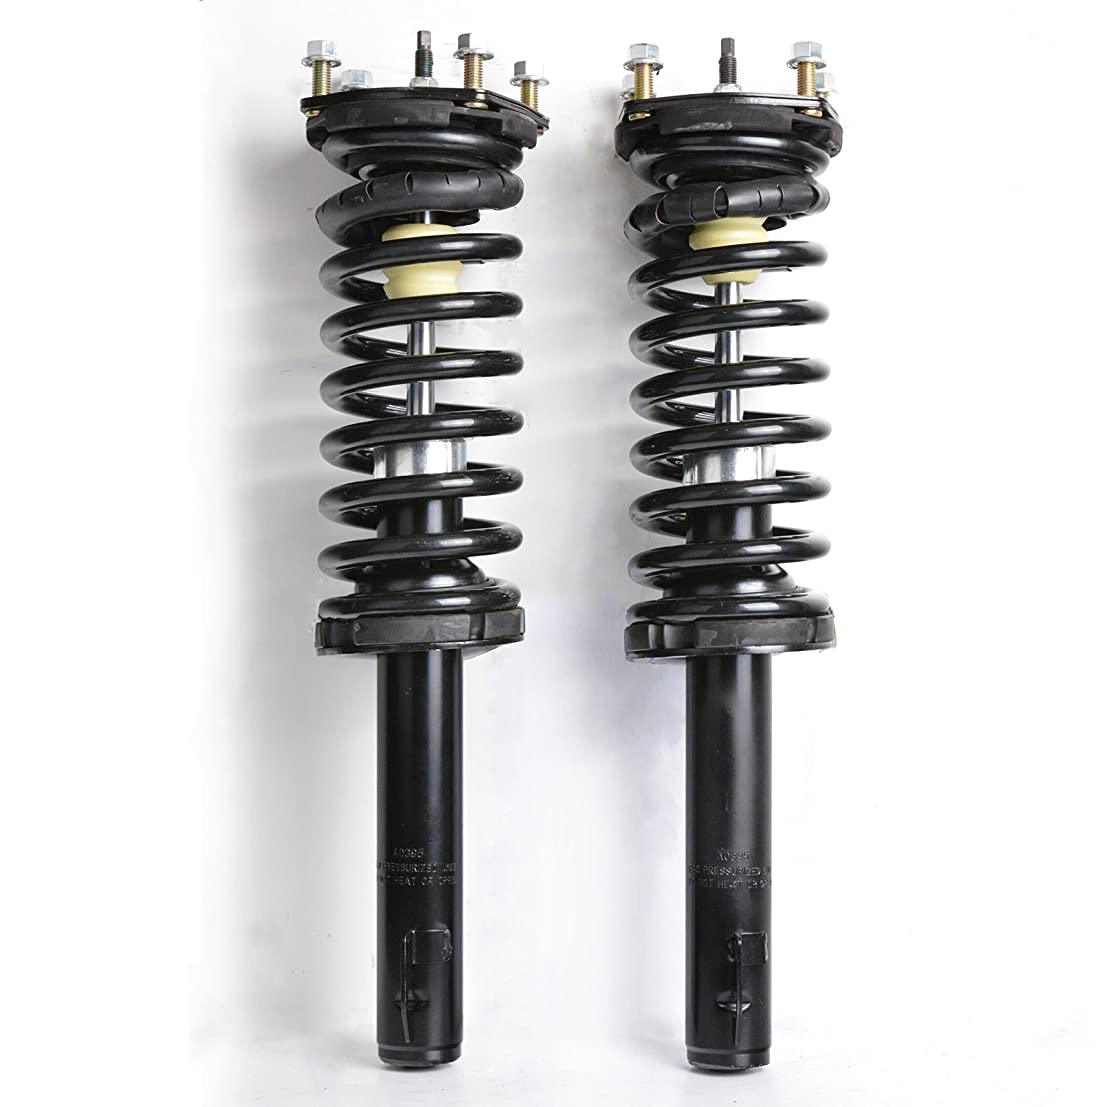 MILLION PARTS 2pc Front Complete Strut Shock Absorber Assembly 171377 for Jeep 2006-2010 Commander 2005 2006 2007 2008 2009 2010 Grand Cherokee